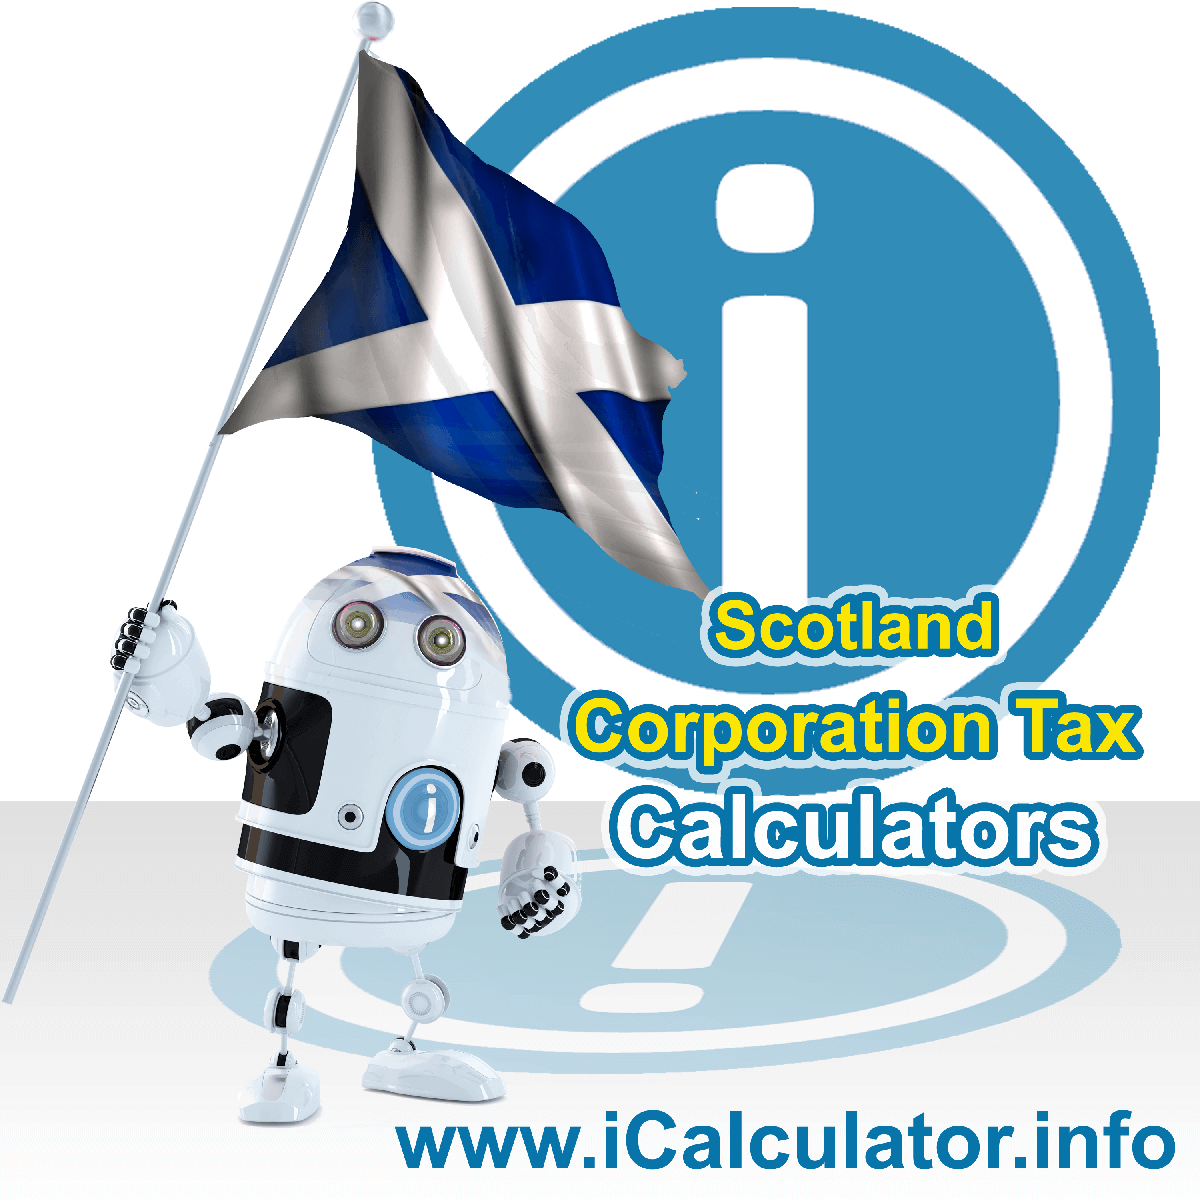 This image shows details about corporation tax calculation in Scotland including finance and tax formula used to calculate corporation tax in Scotland as integrated in the Scottish Corporation Tax Calculator 2020/21